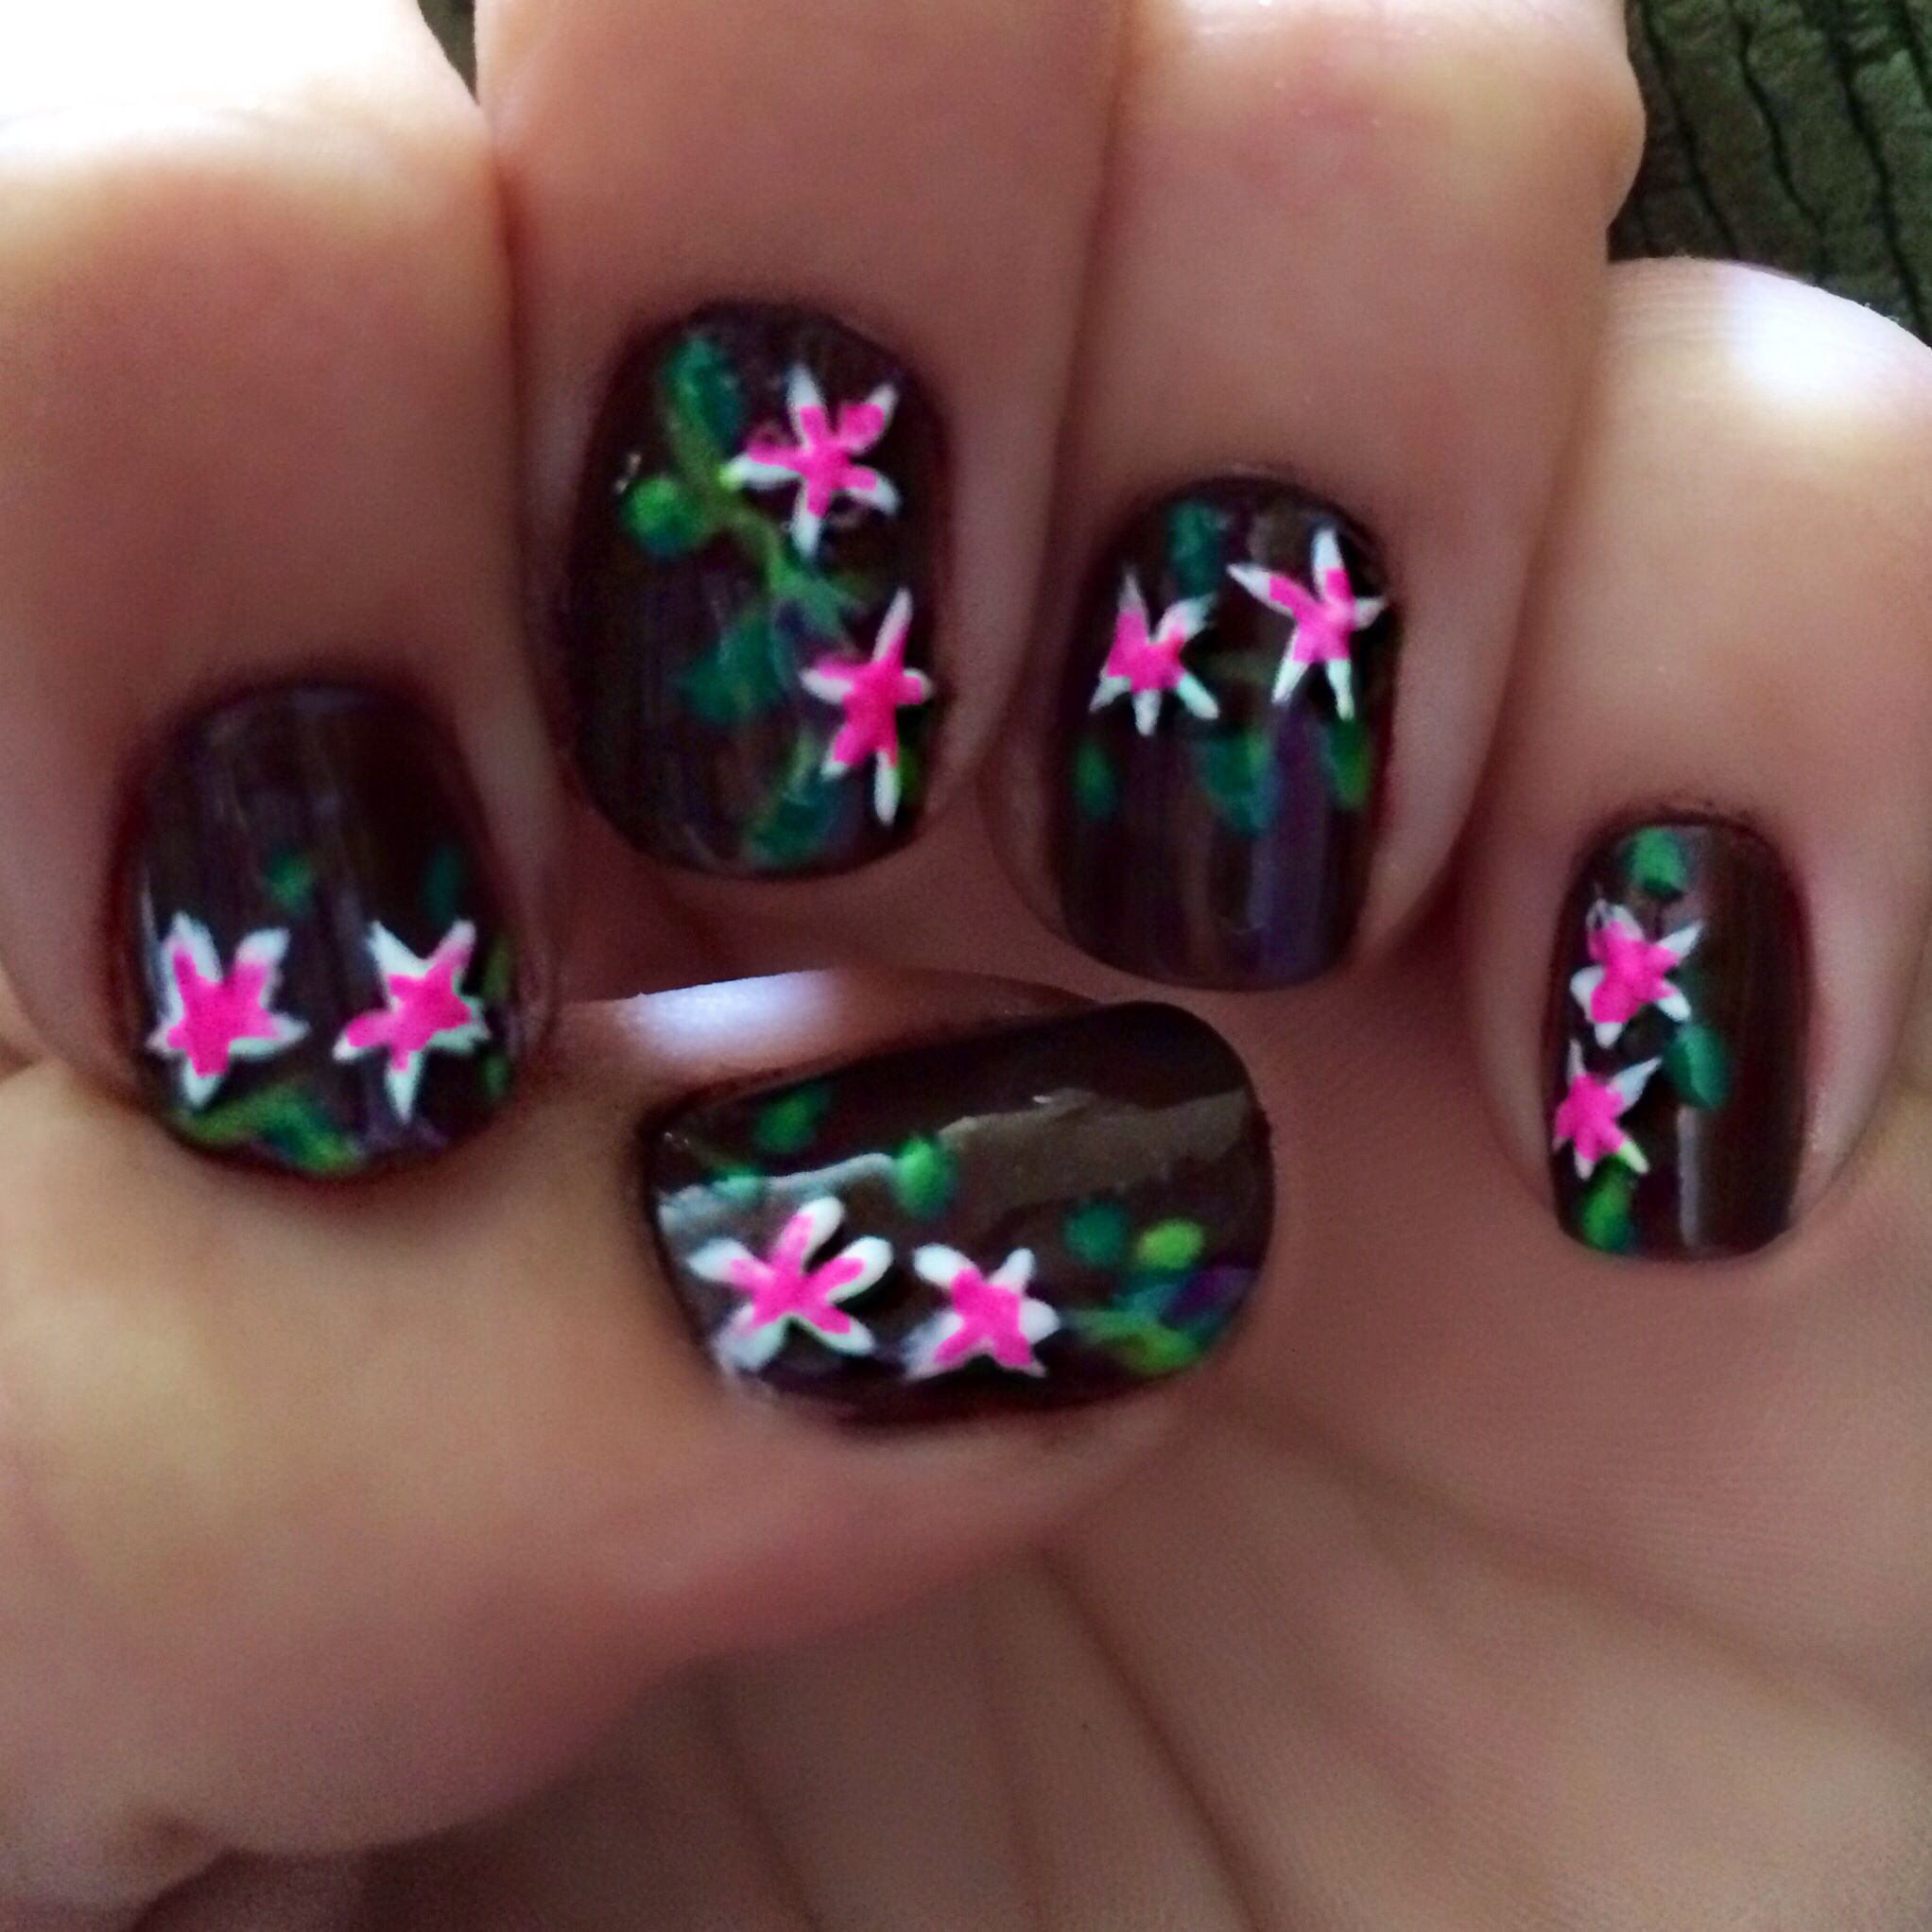 Diy Plumeria Nail Art Manicure For A Tropical Or Hawaii Theme